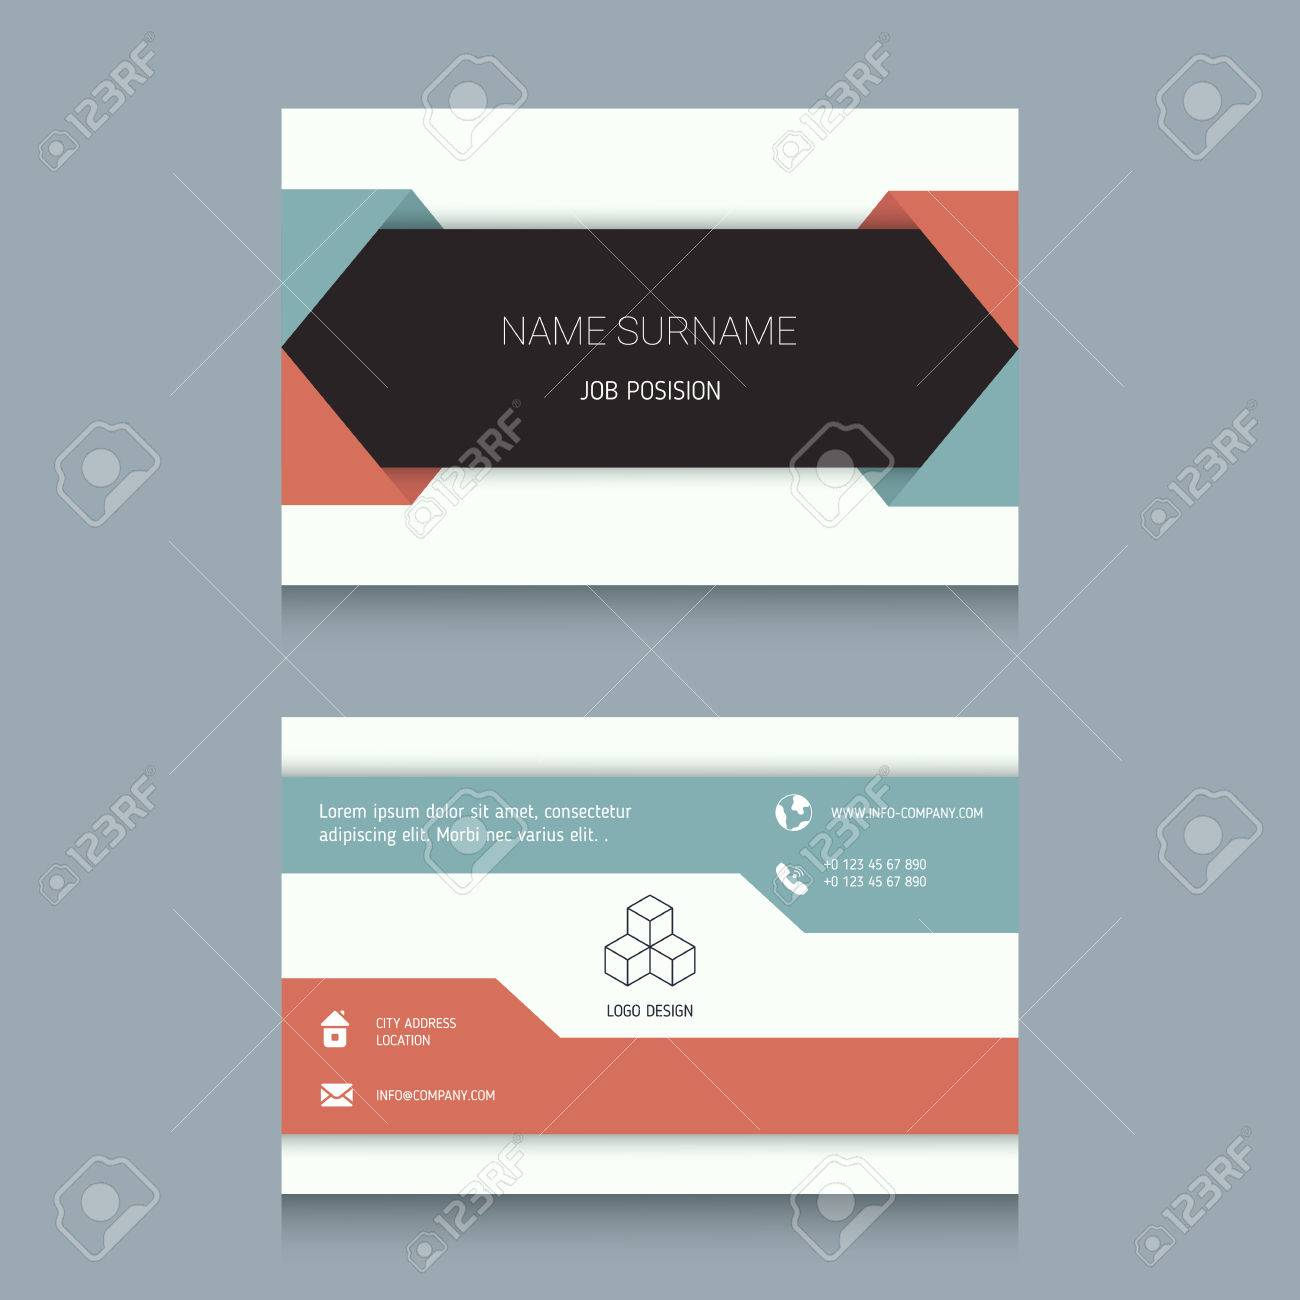 Wonderful Psychology Business Cards Pictures Inspiration ...